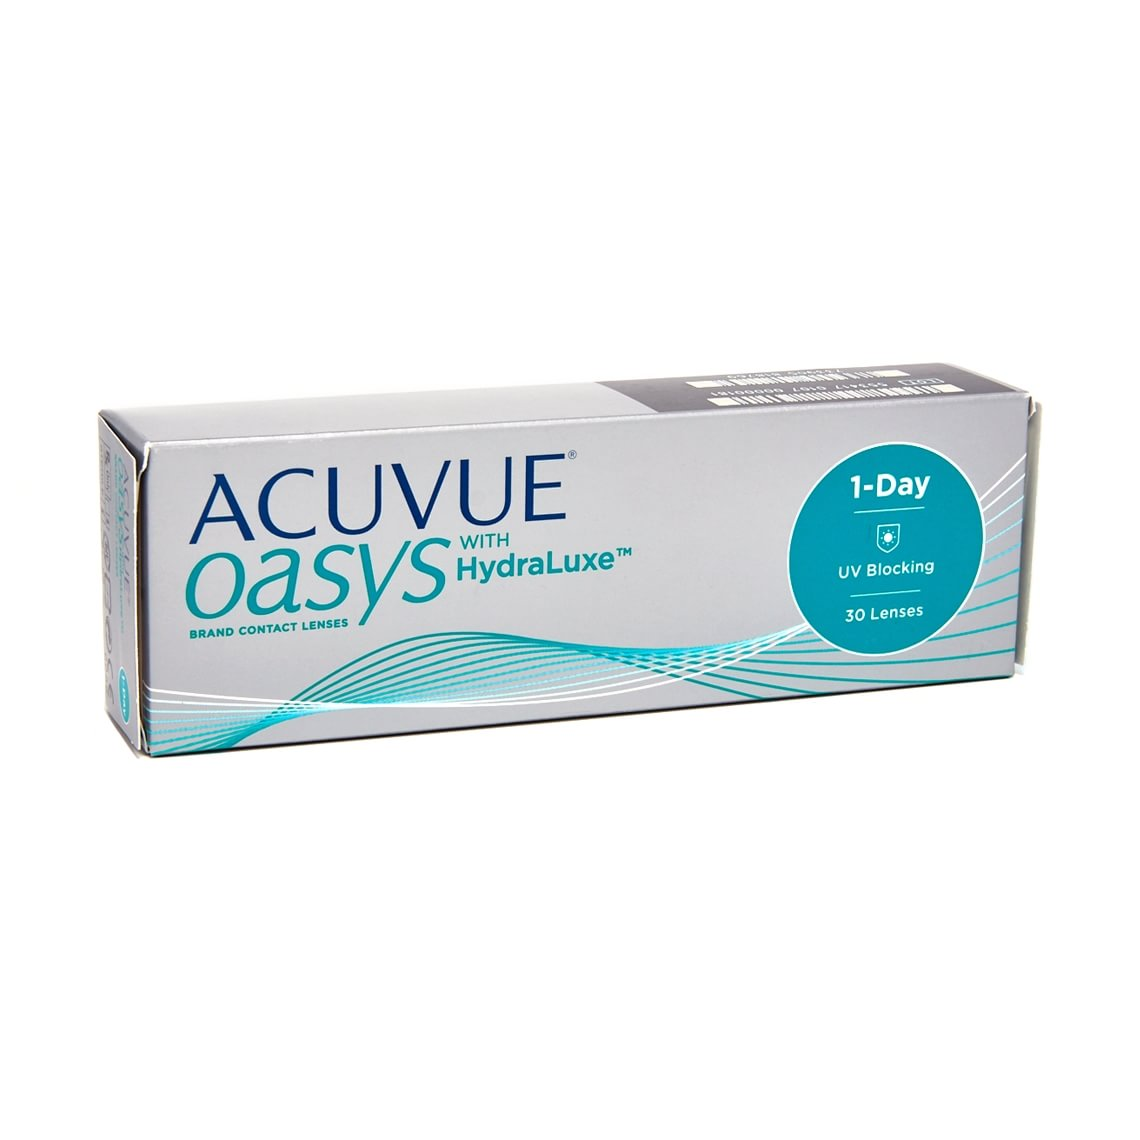 Acuvue Oasys 1-Day with HydraLuxe 30 stk/pk